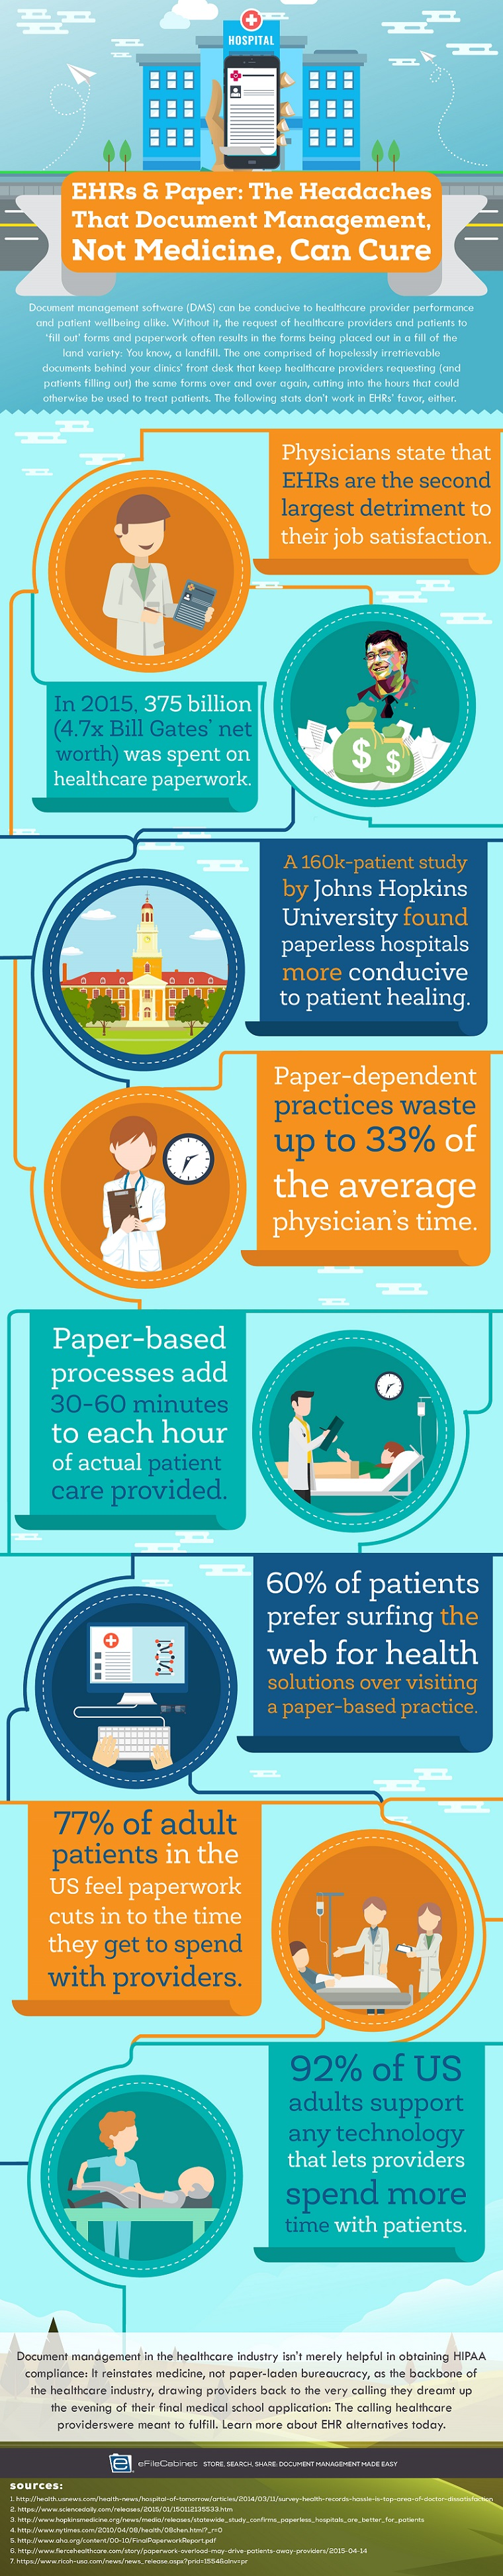 EHRS AND PAPEr